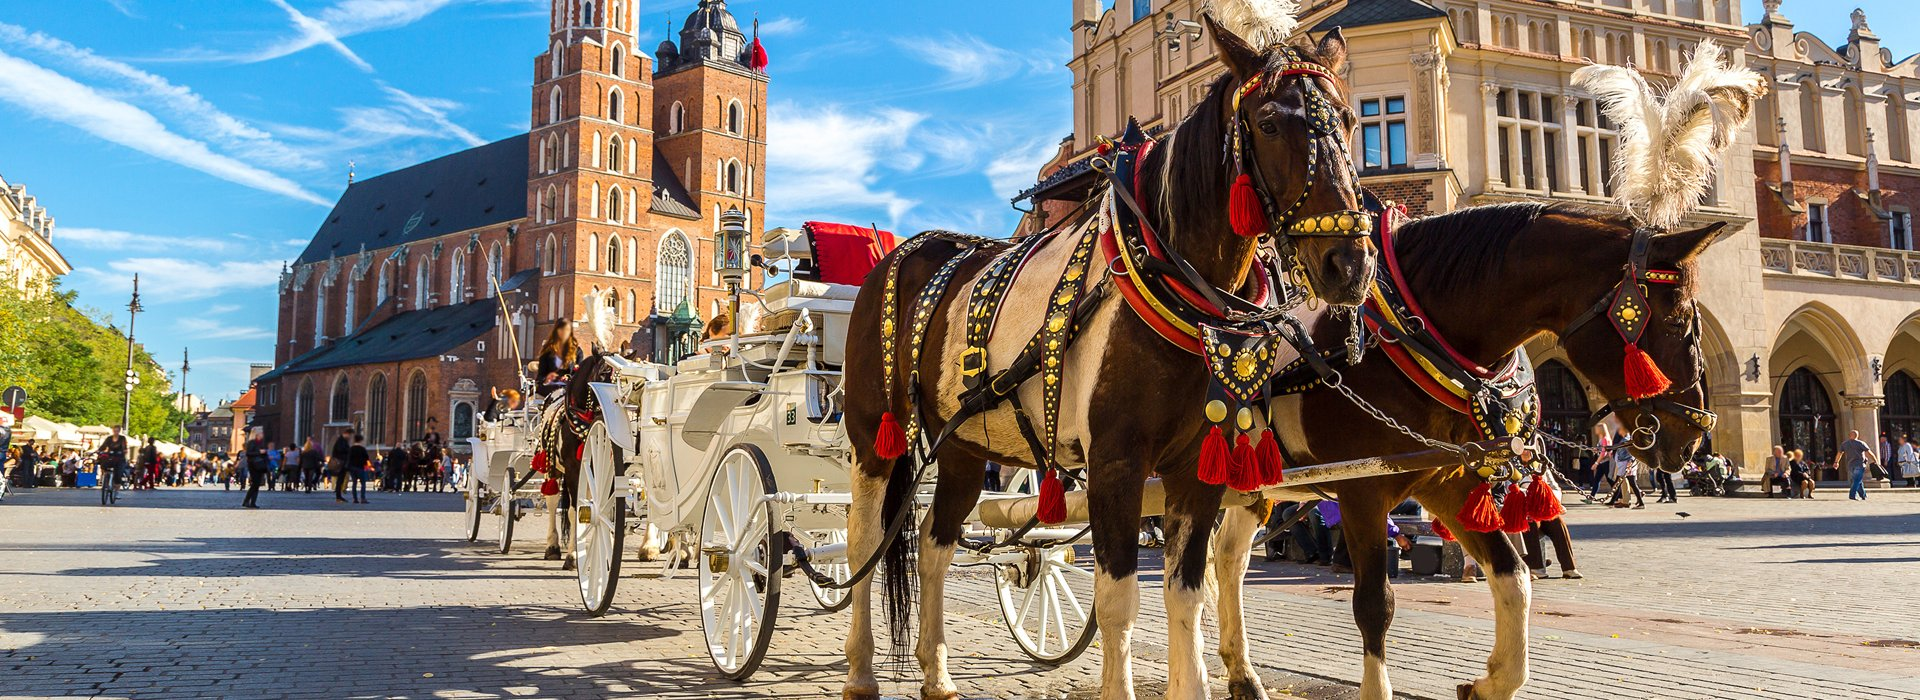 Beautiful and color full city of Cracow